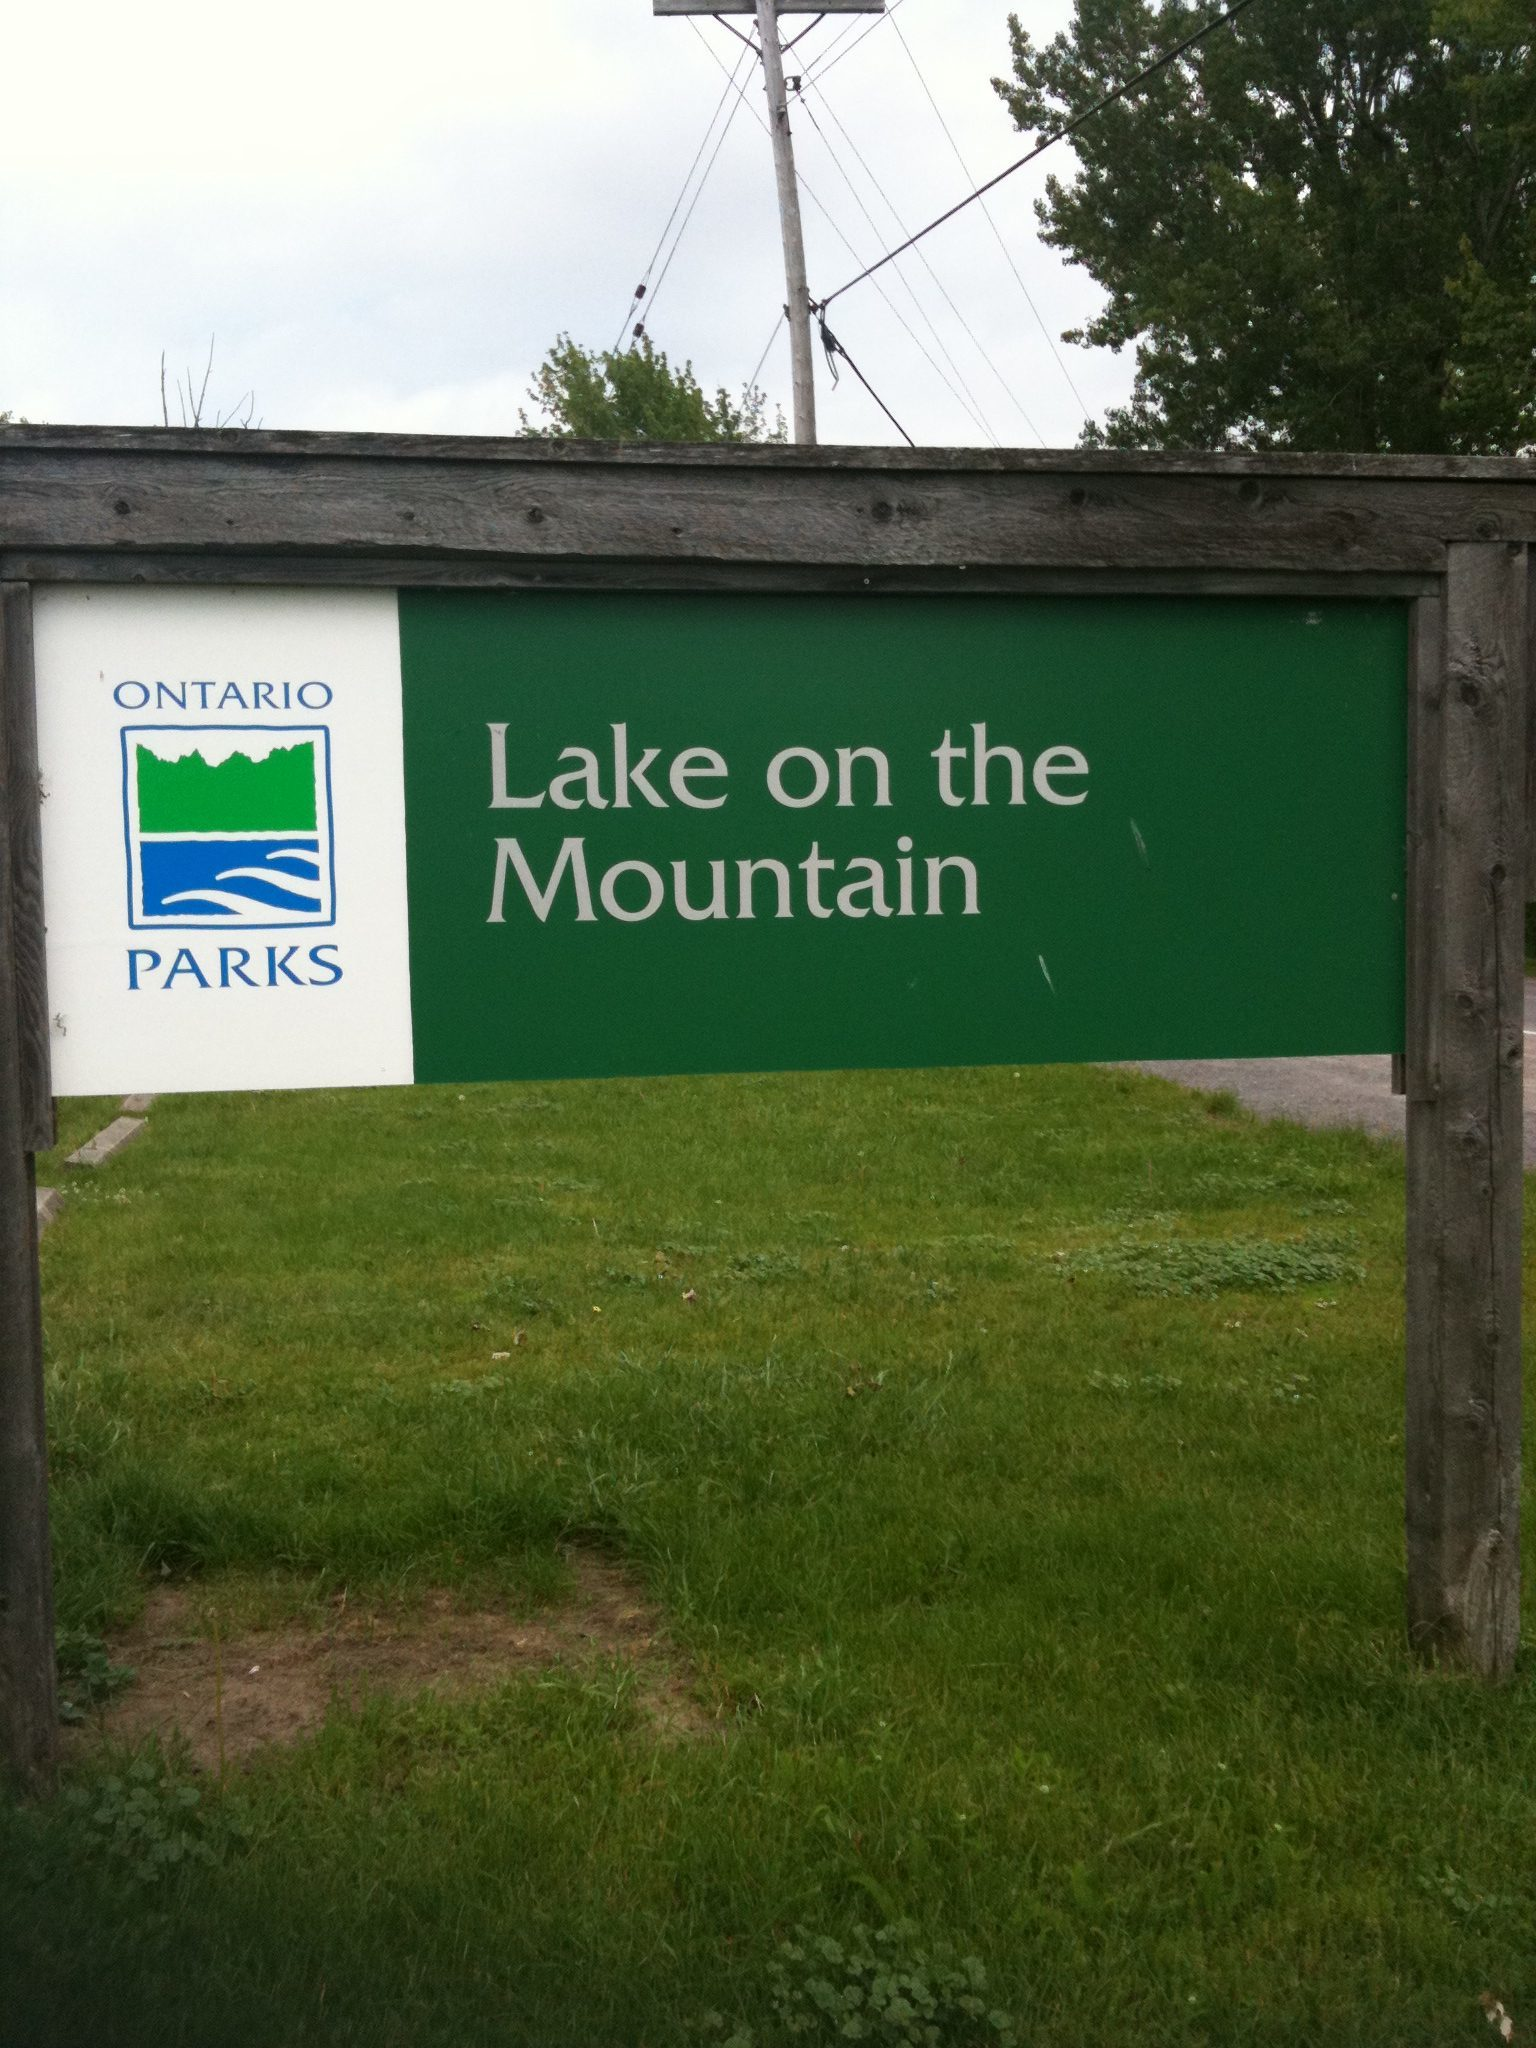 Lake on the Mountain_Picton_Ontario_Parks_Canada